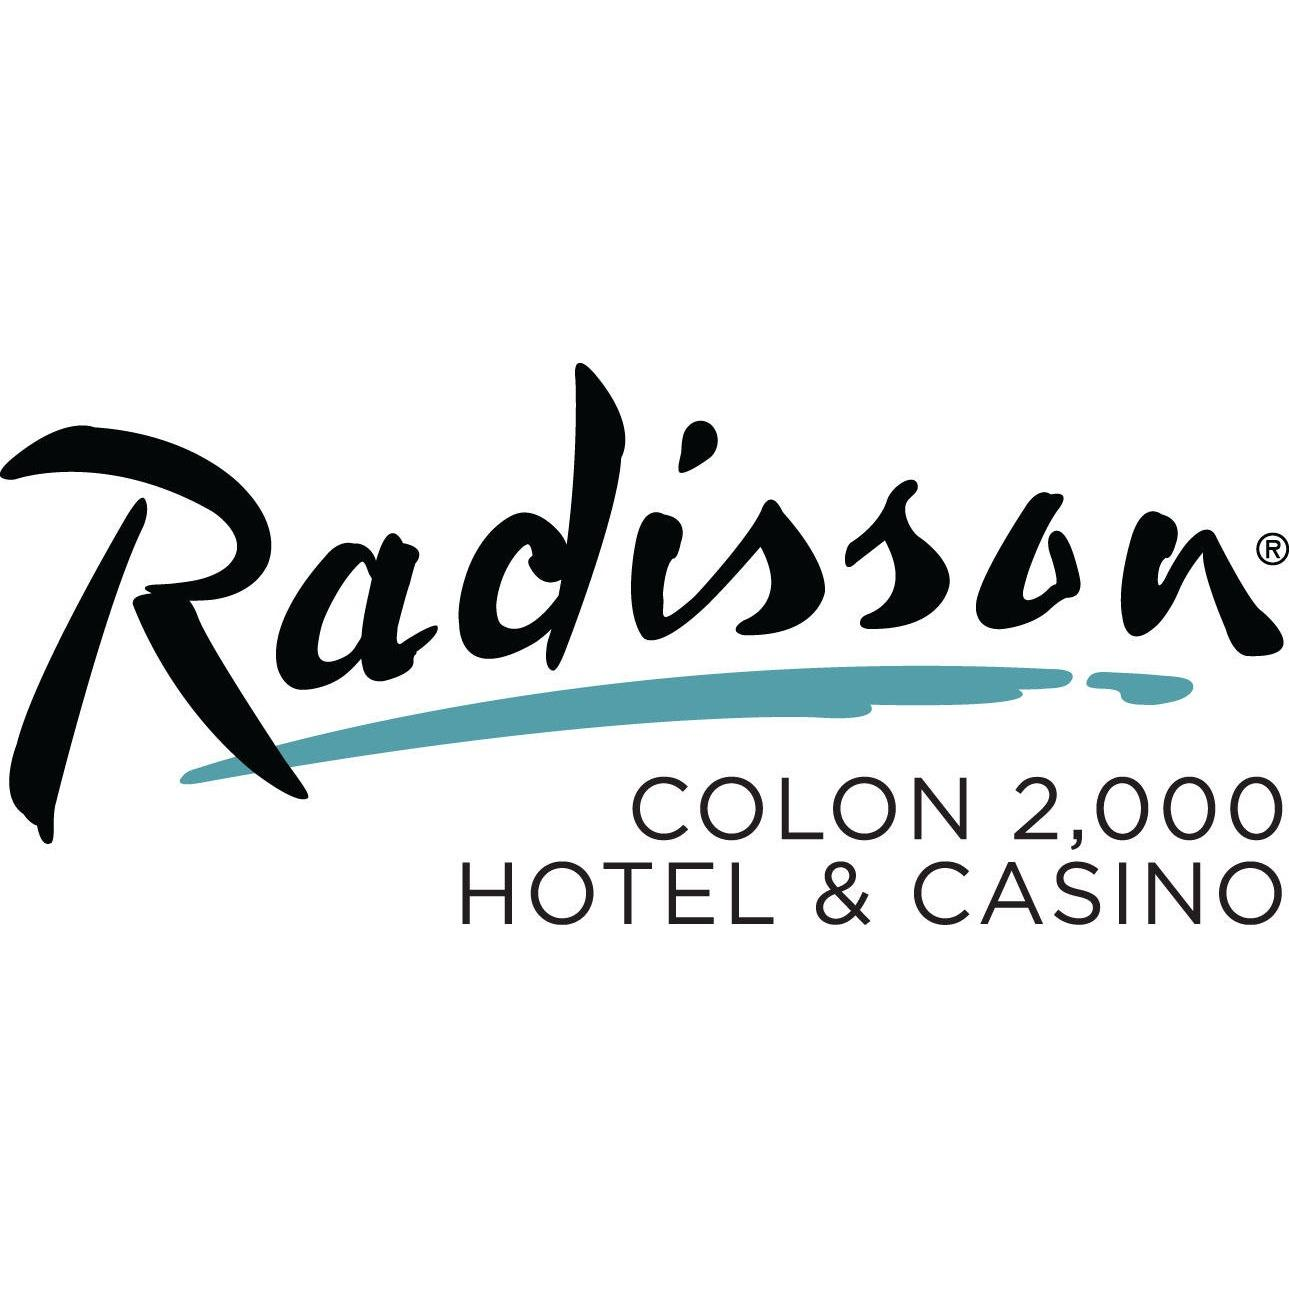 Radisson Colon 2,000 Hotel & Casino